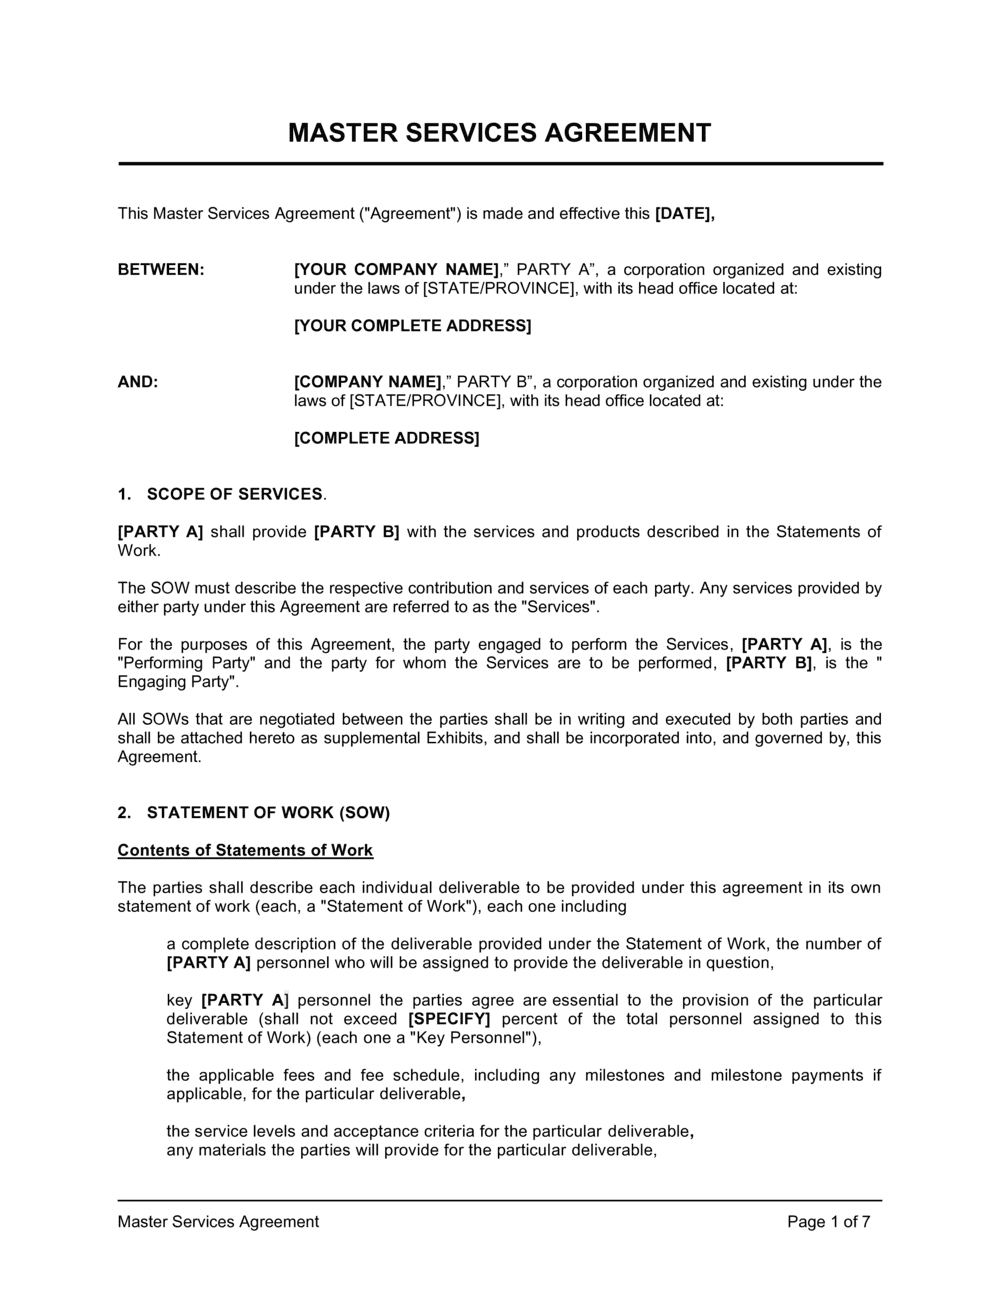 Business-in-a-Box's Master Services Agreement Template